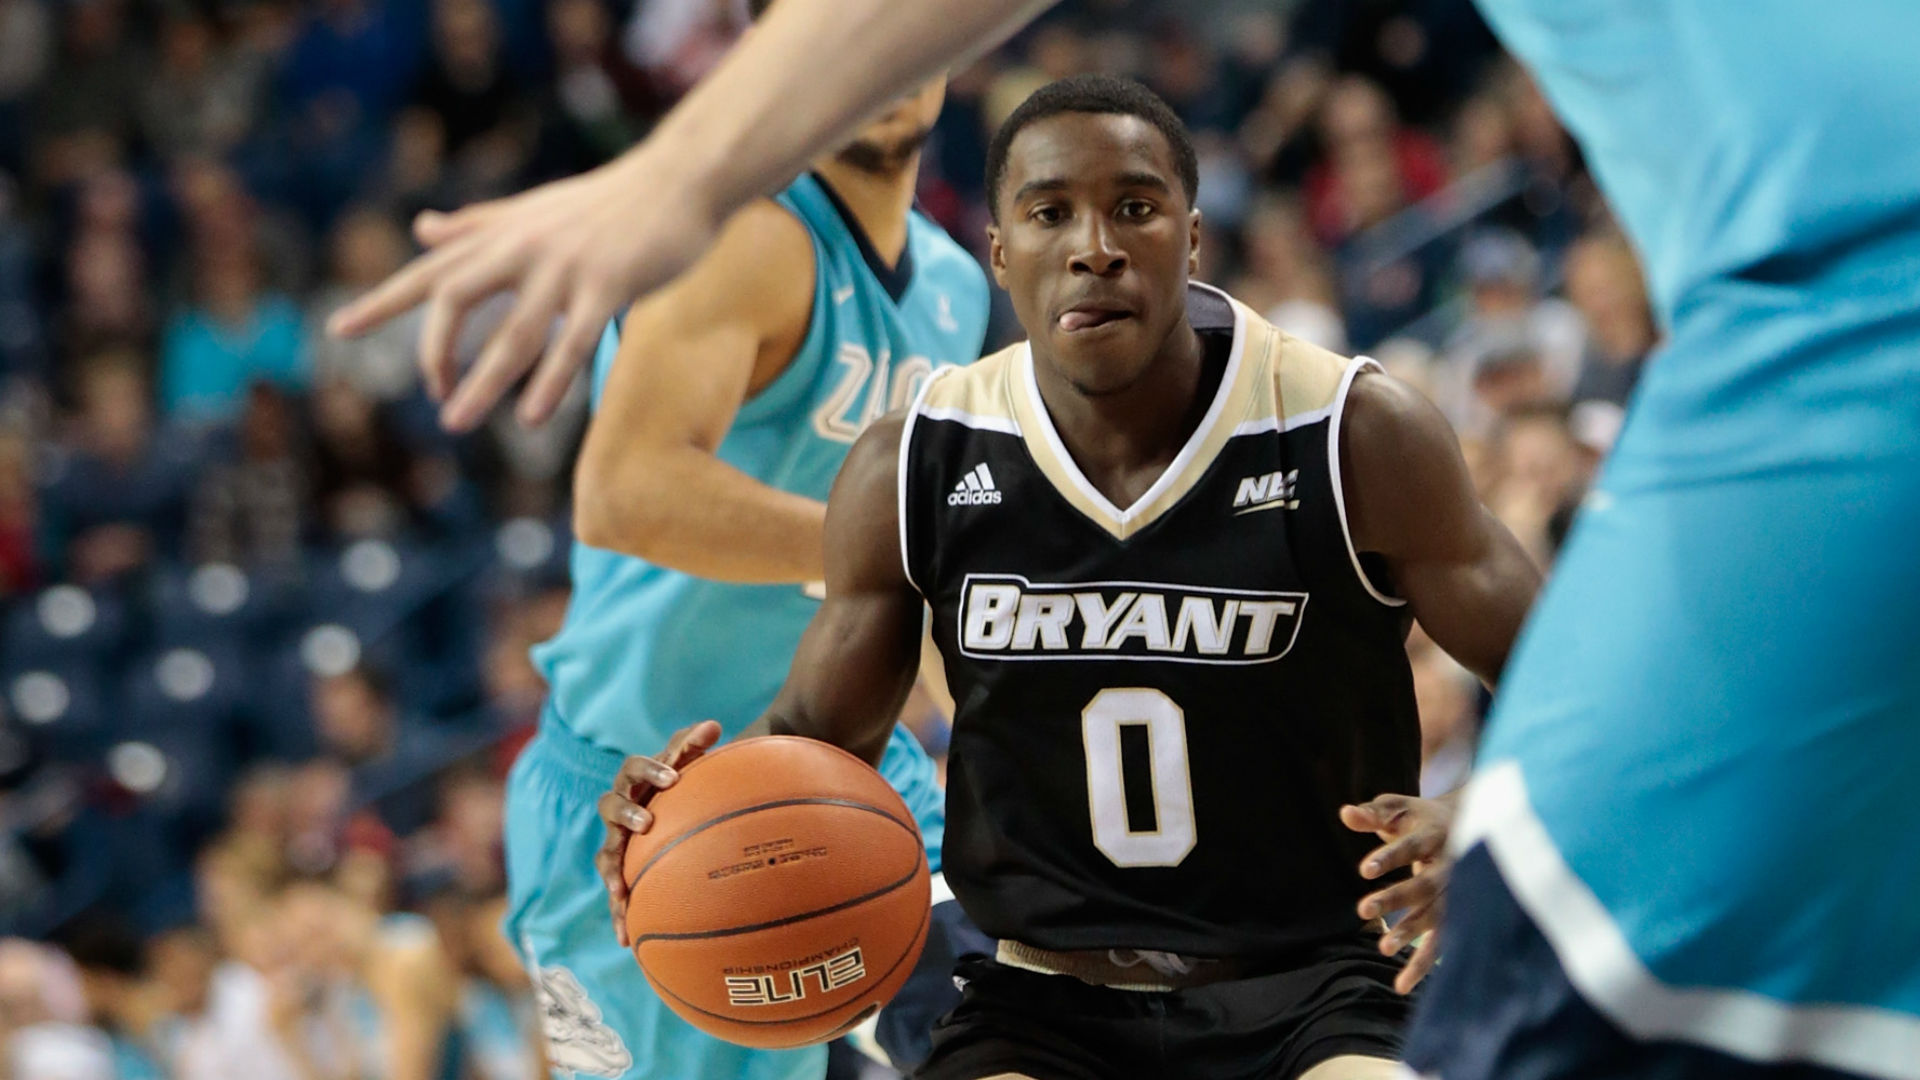 Blackmon's buzzer beater boosts Brown by Bryant 91-90